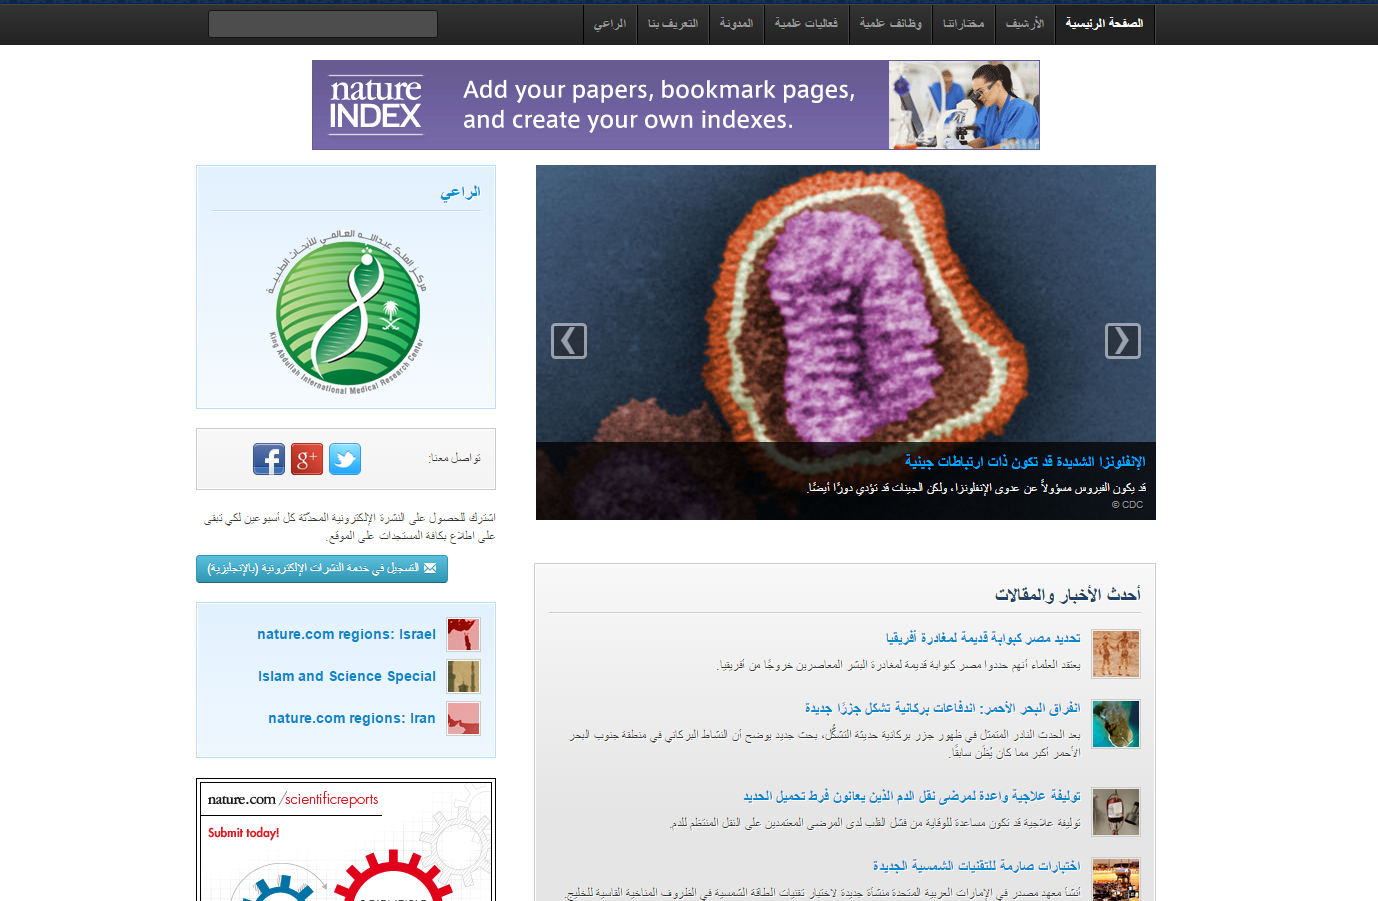 Nature Middle East: Emerging Science in the Arab World